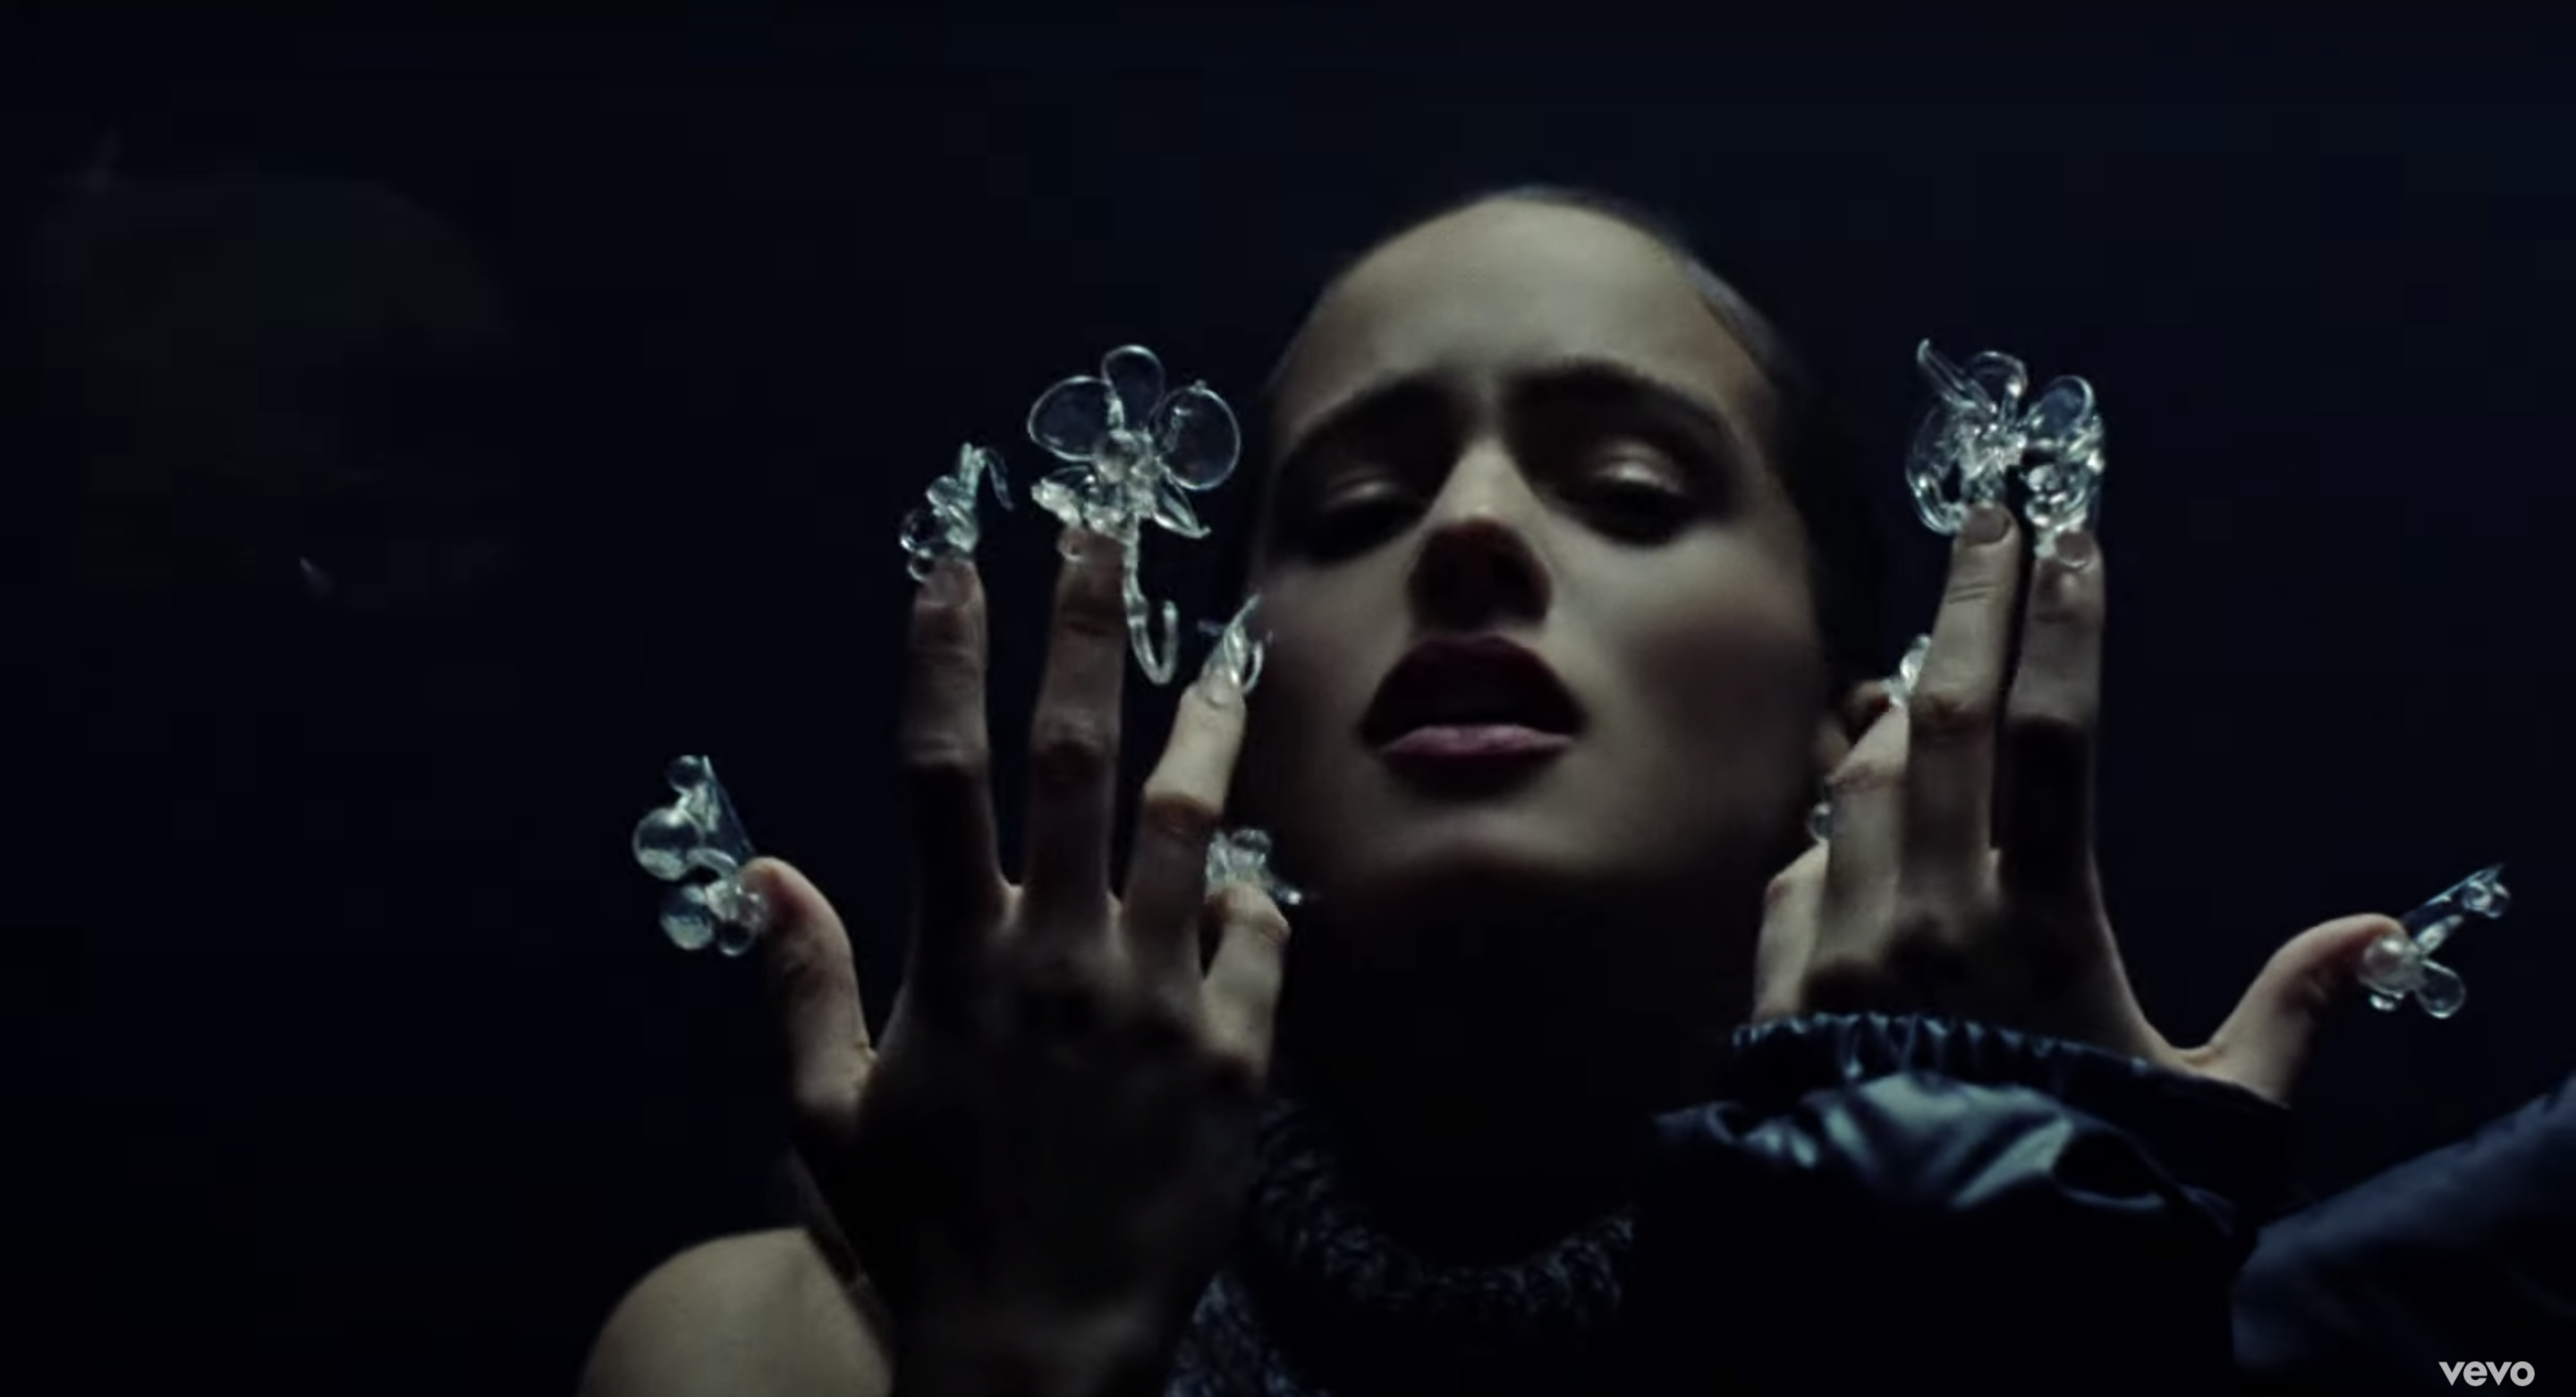 Billie Eilish, Rosalía, and Their Killer Nails Come Together for a New Song and Music Video